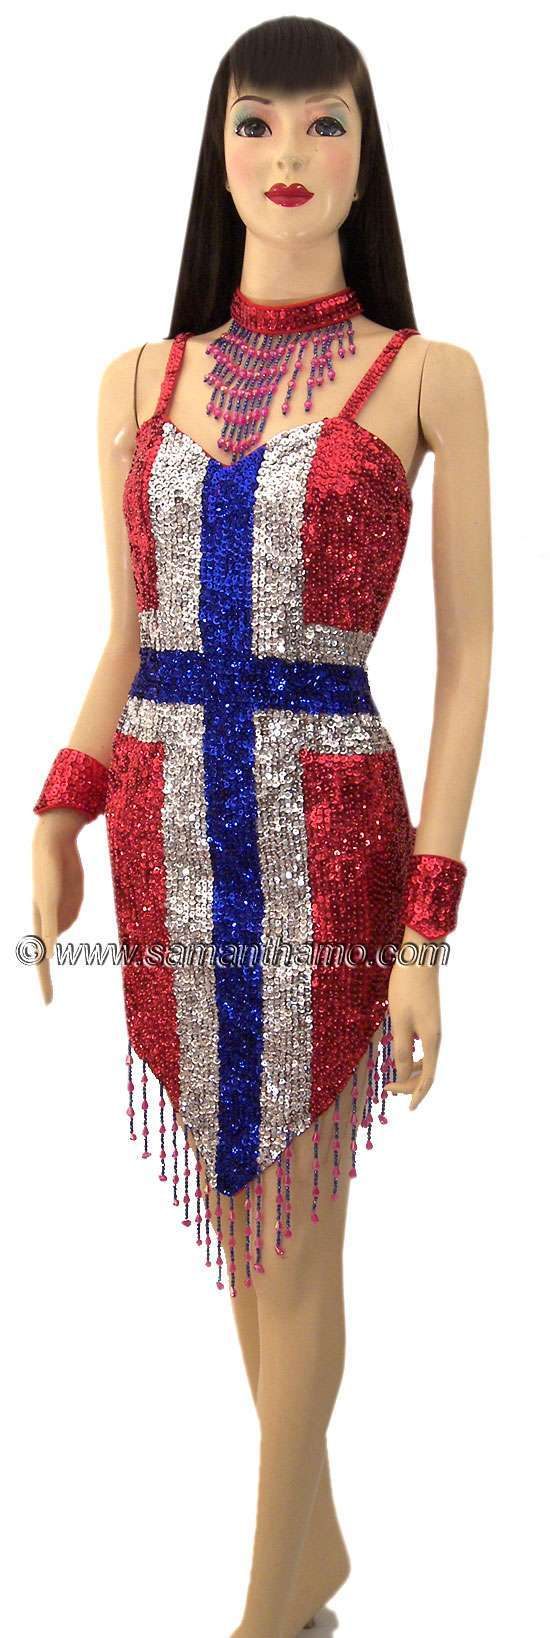 Sdw438 tailor made sequin norway flag dance dress 179 for Tailor made dress shirts